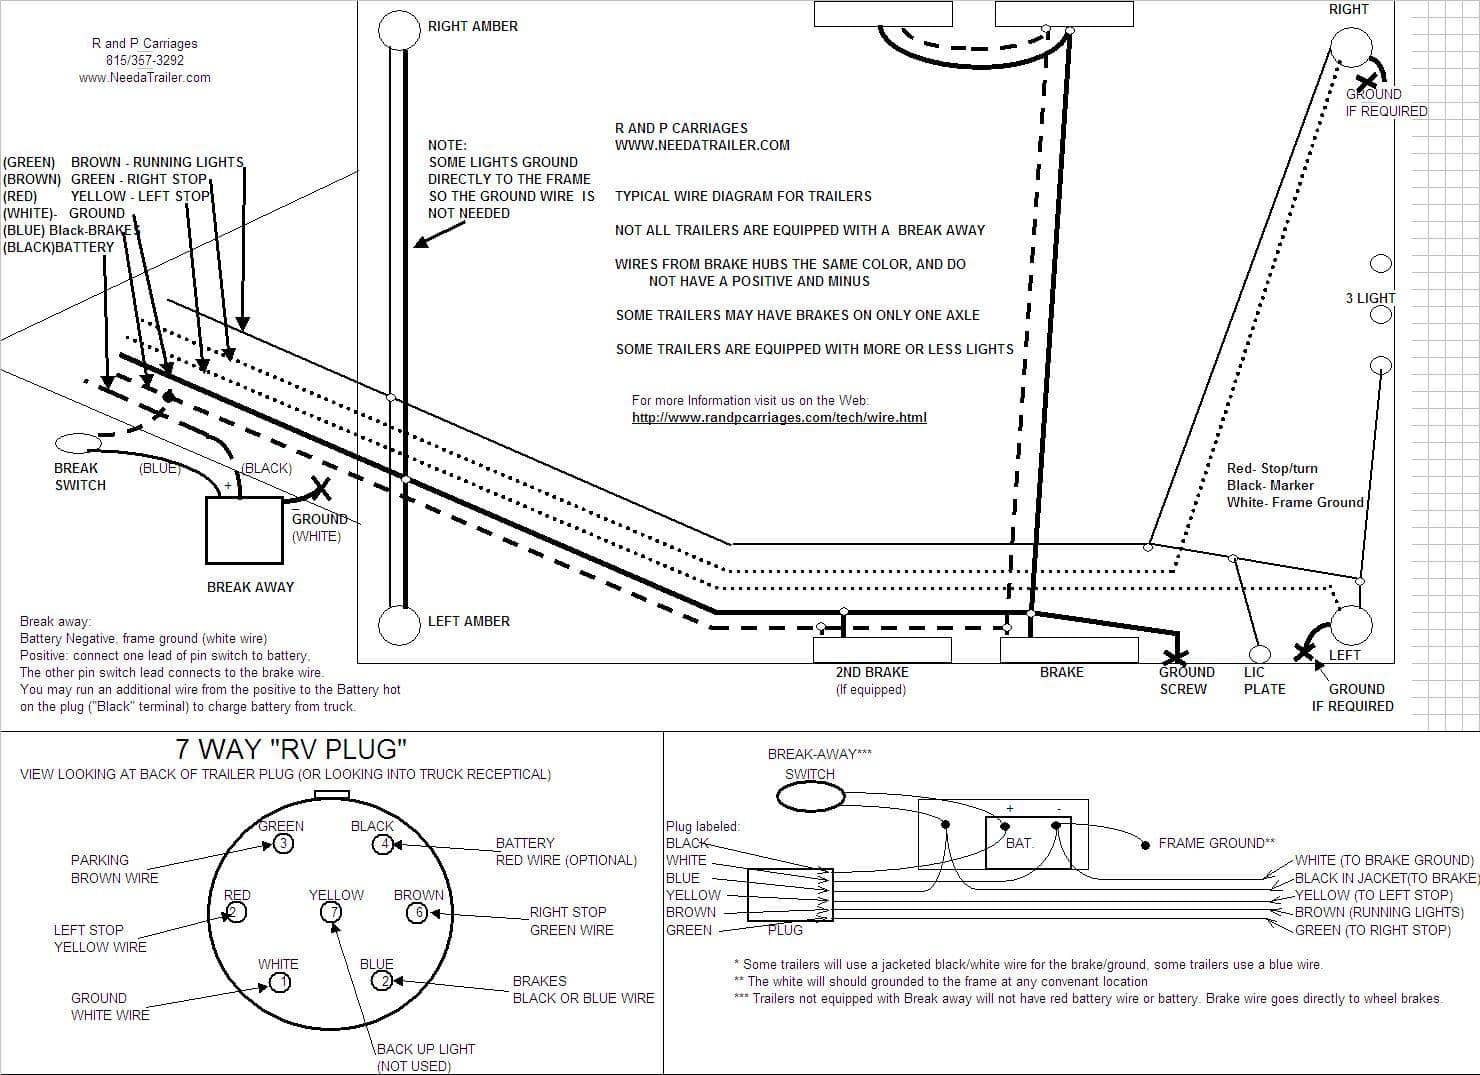 7 Way Plug Information | R And P Carriages | Cargo, Utility, Dump - Electric Trailer Brake Wiring Diagram